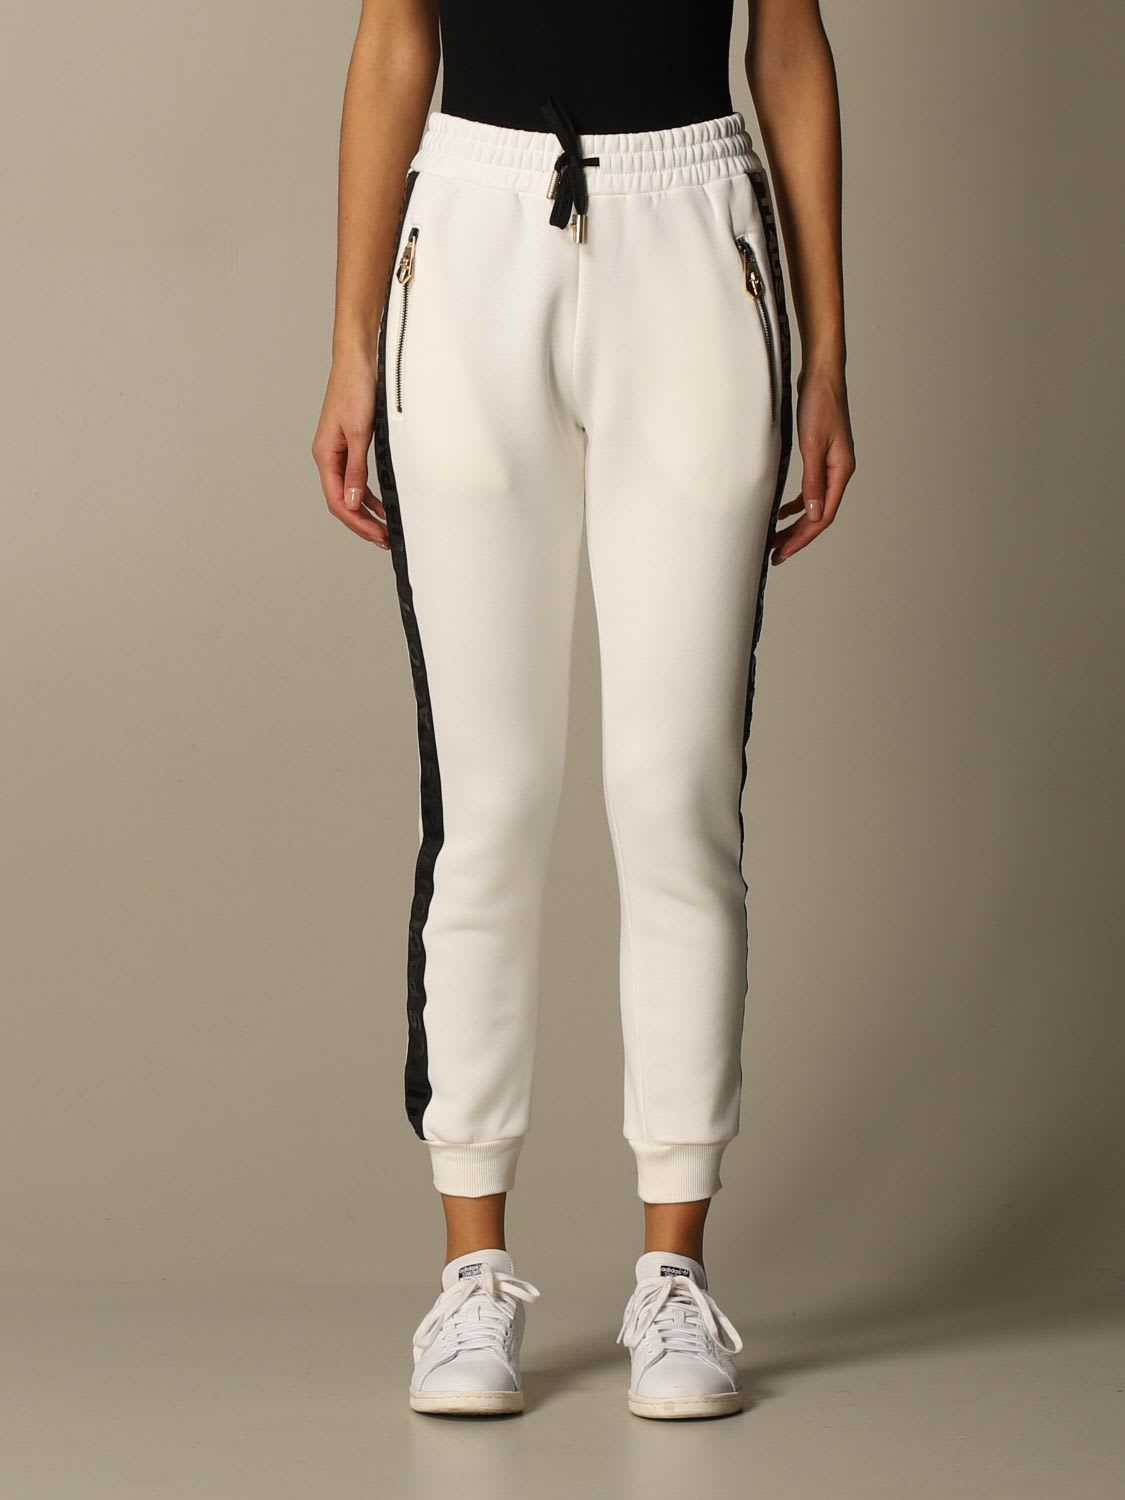 Paciotti 4us Pants Cotton Jogging Trousers With Zip